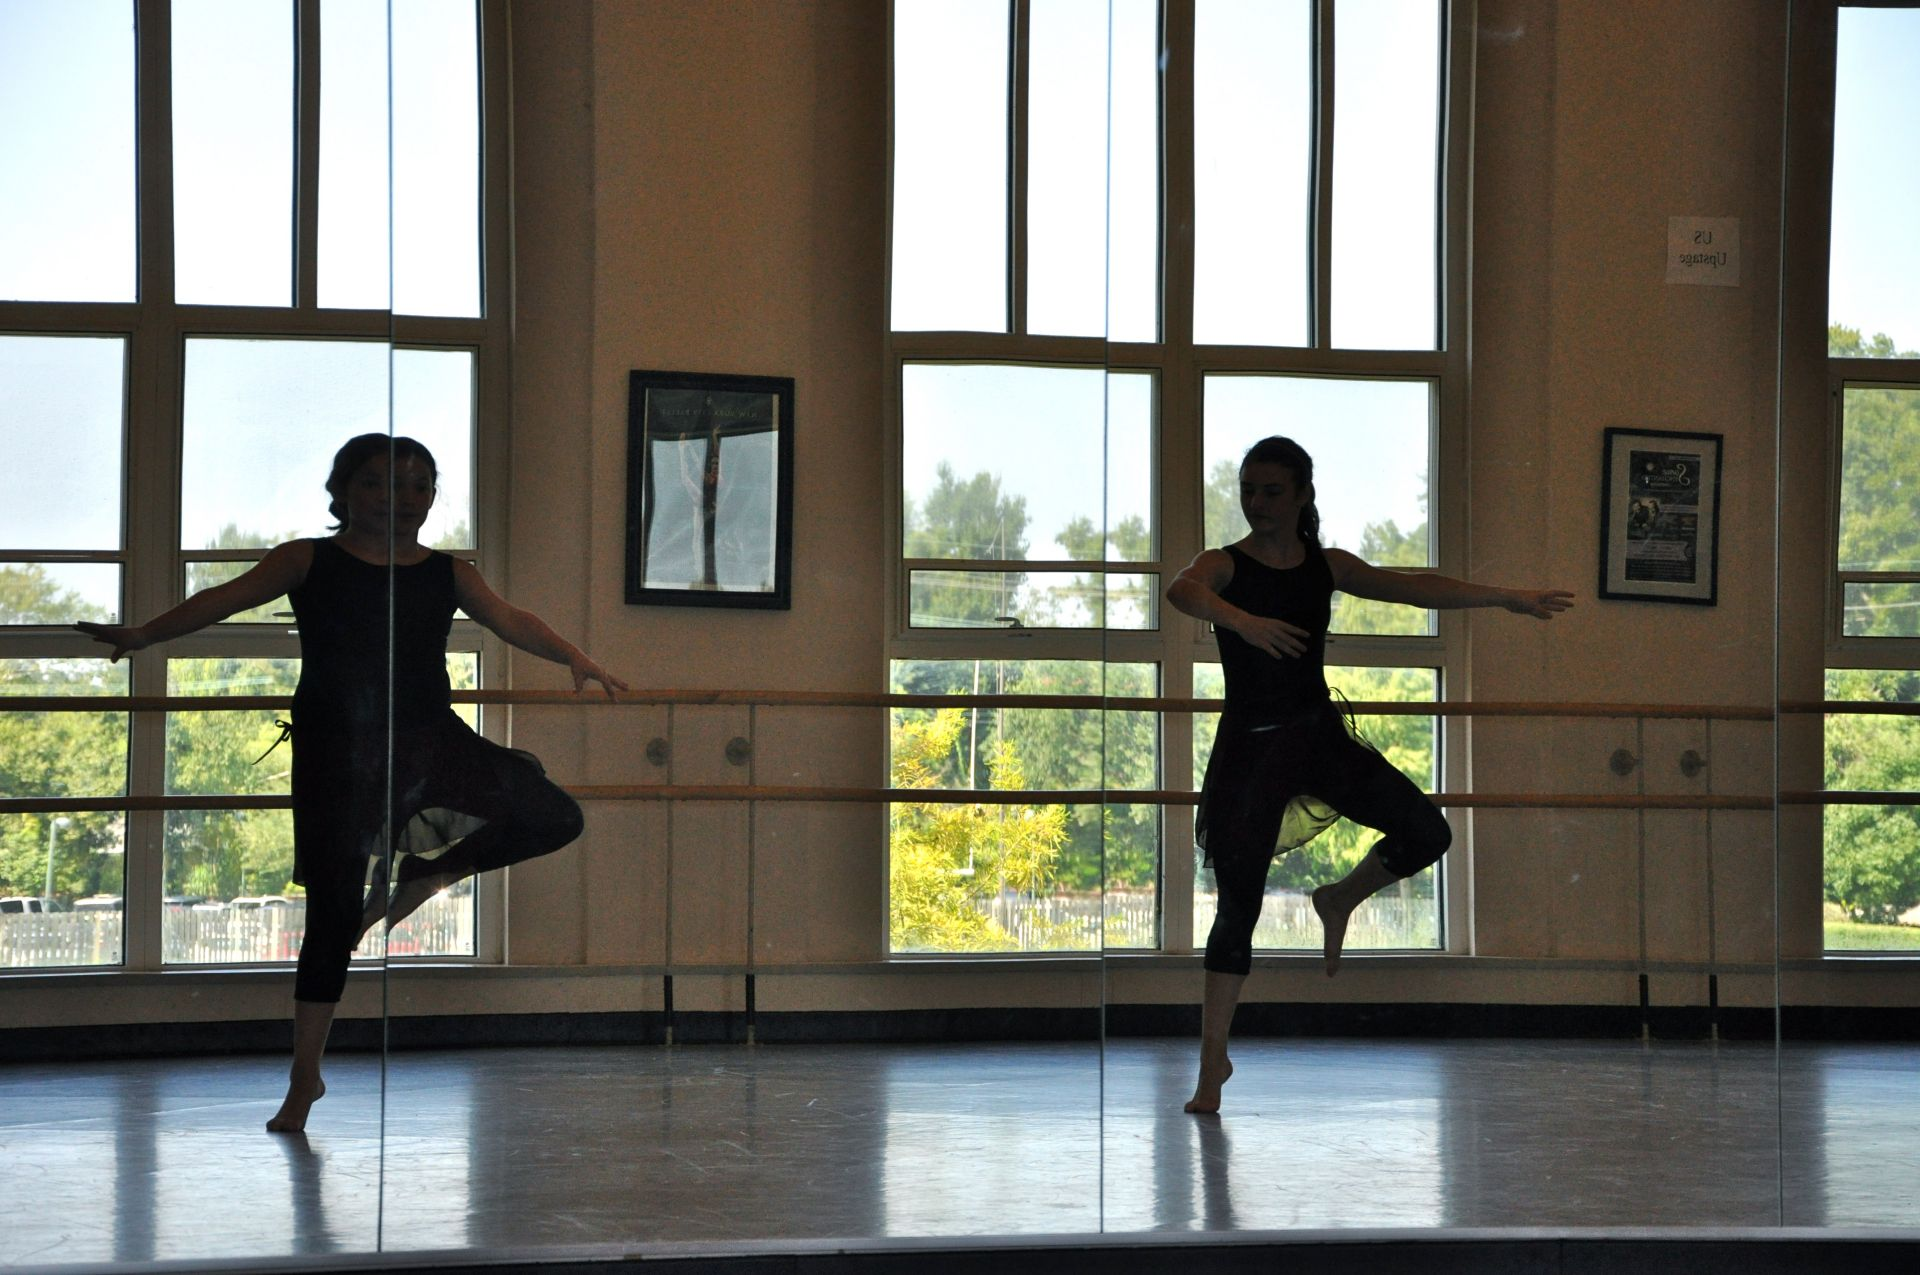 Dance studios for budding performers in the Reily Recreation Center